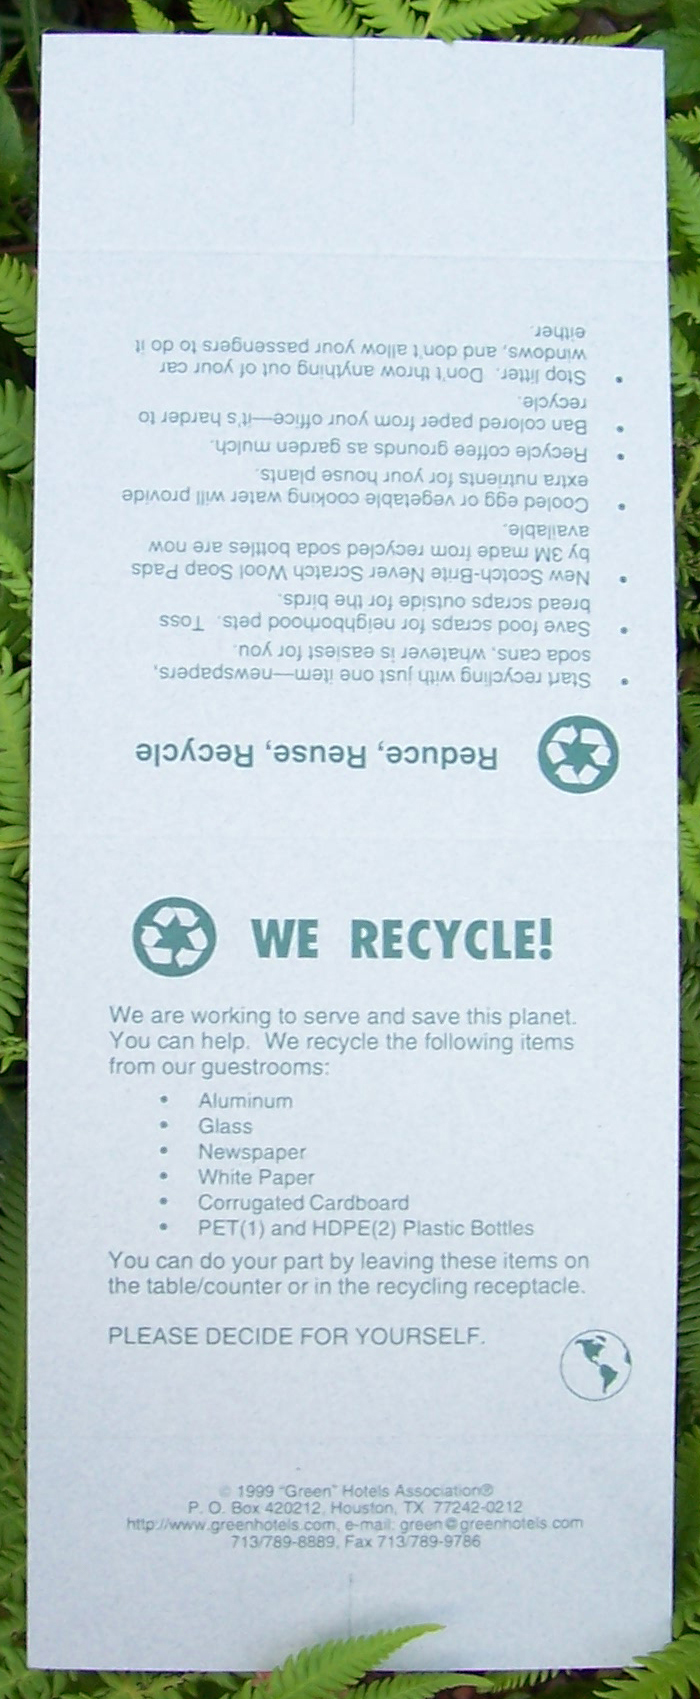 on the list of recyclables you may cross off items which are not currently being collected second side offers guests practical simple ideas for